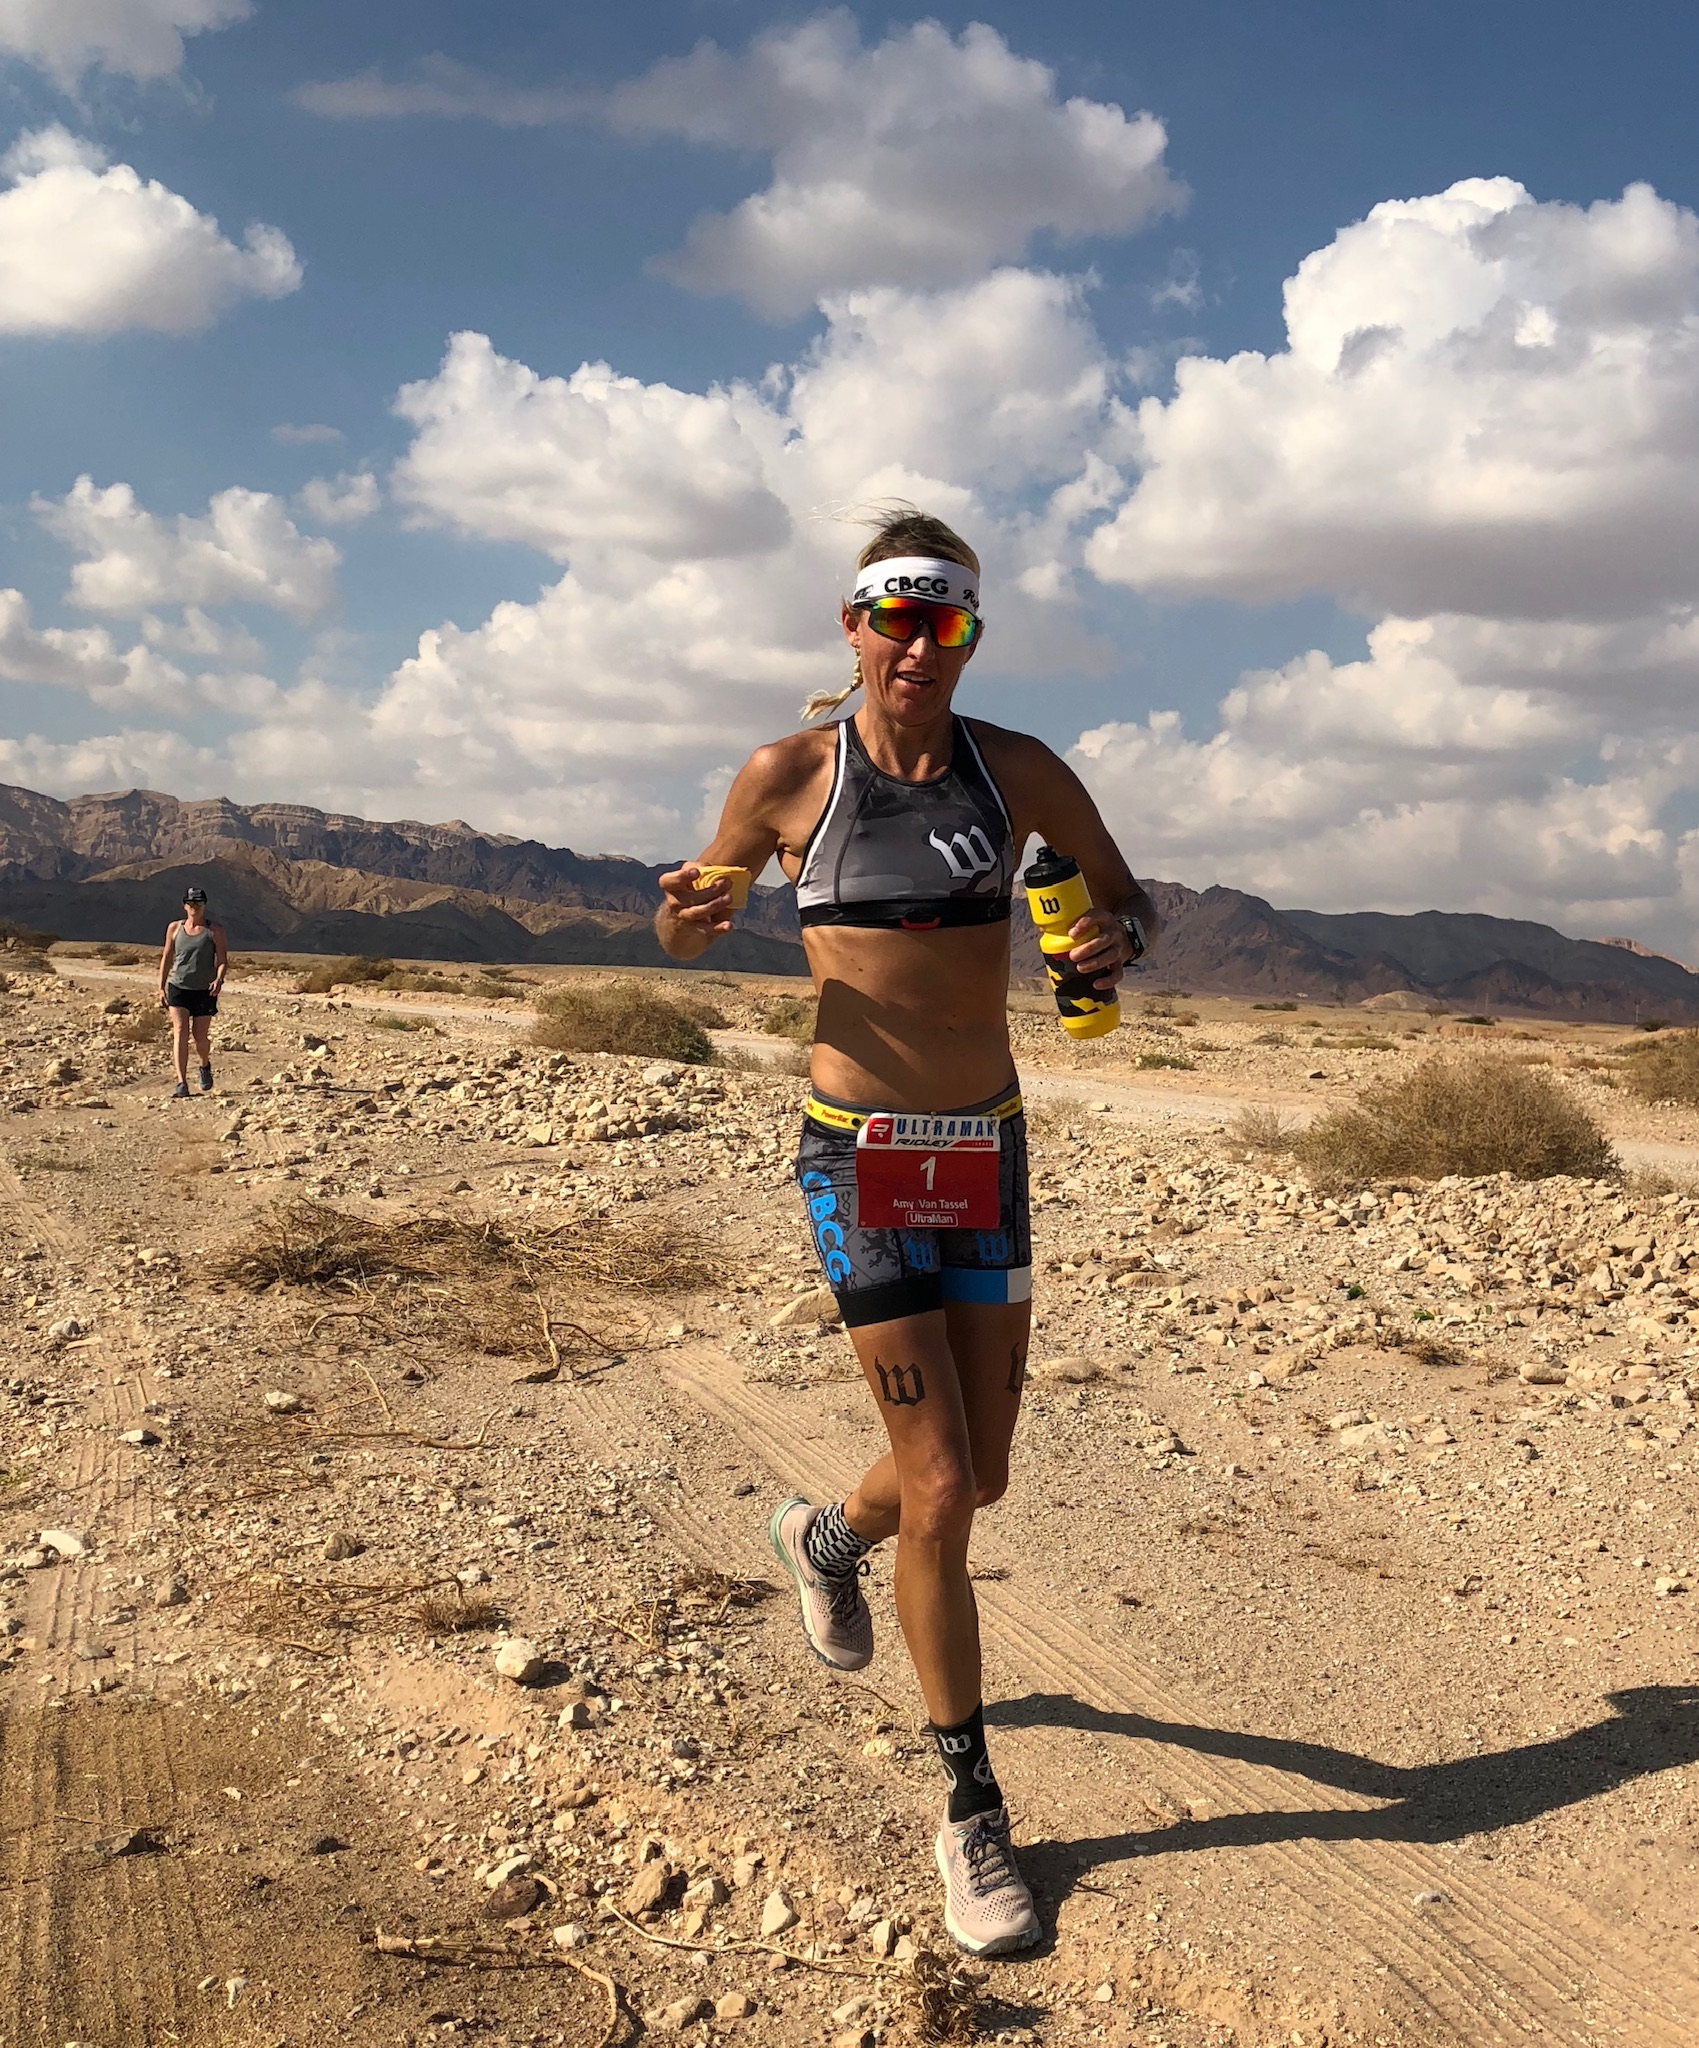 Coach_Terry_Wilson_Pursuit_of_The_Perfect_Race_Ultram_Isereal_Amy_VT_Overall_Winer__Run_1.JPG